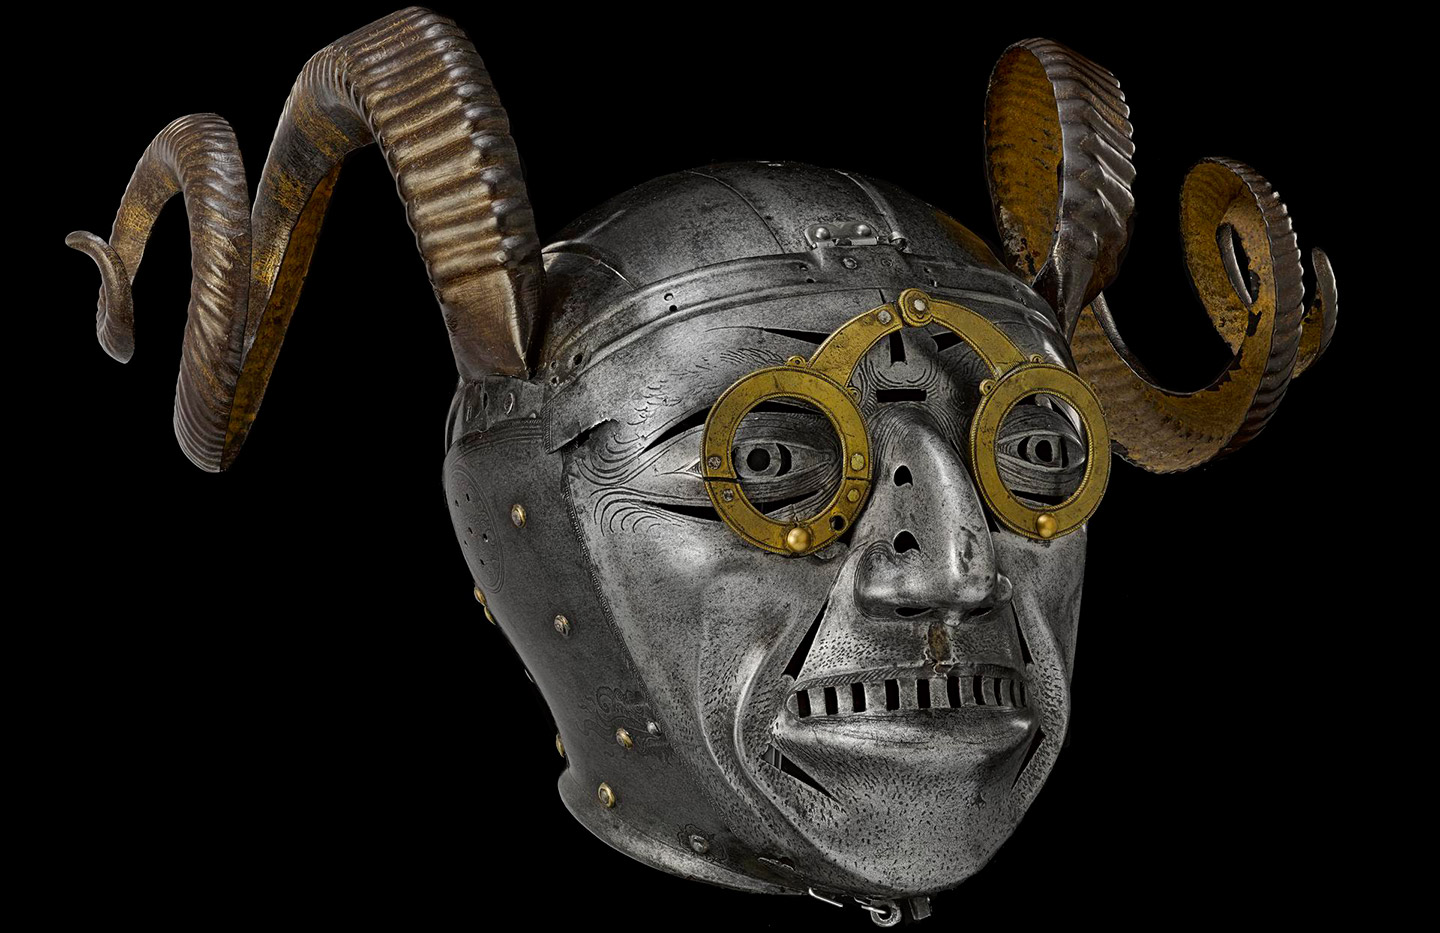 skull shaped helmet with iron rams horns and wearing a pair of brass spectacles.